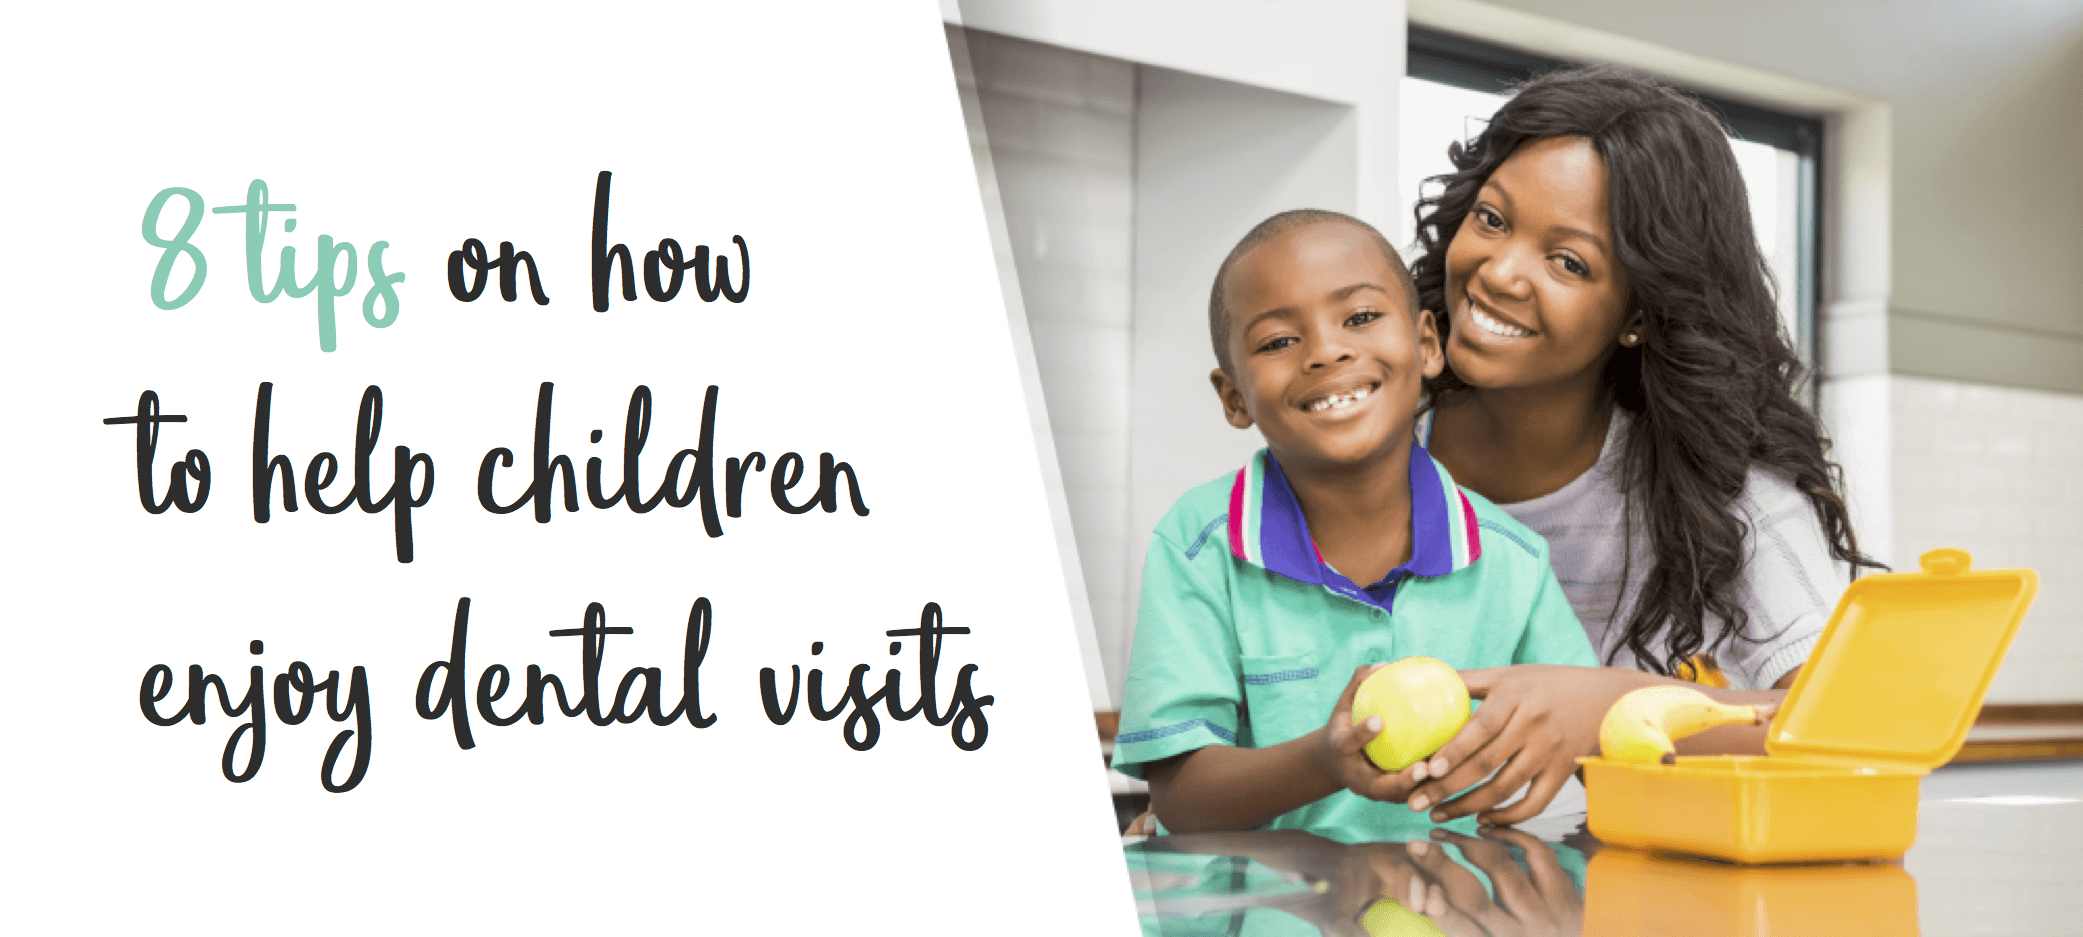 8 tips for parents on how to help your children, Children's Dentist